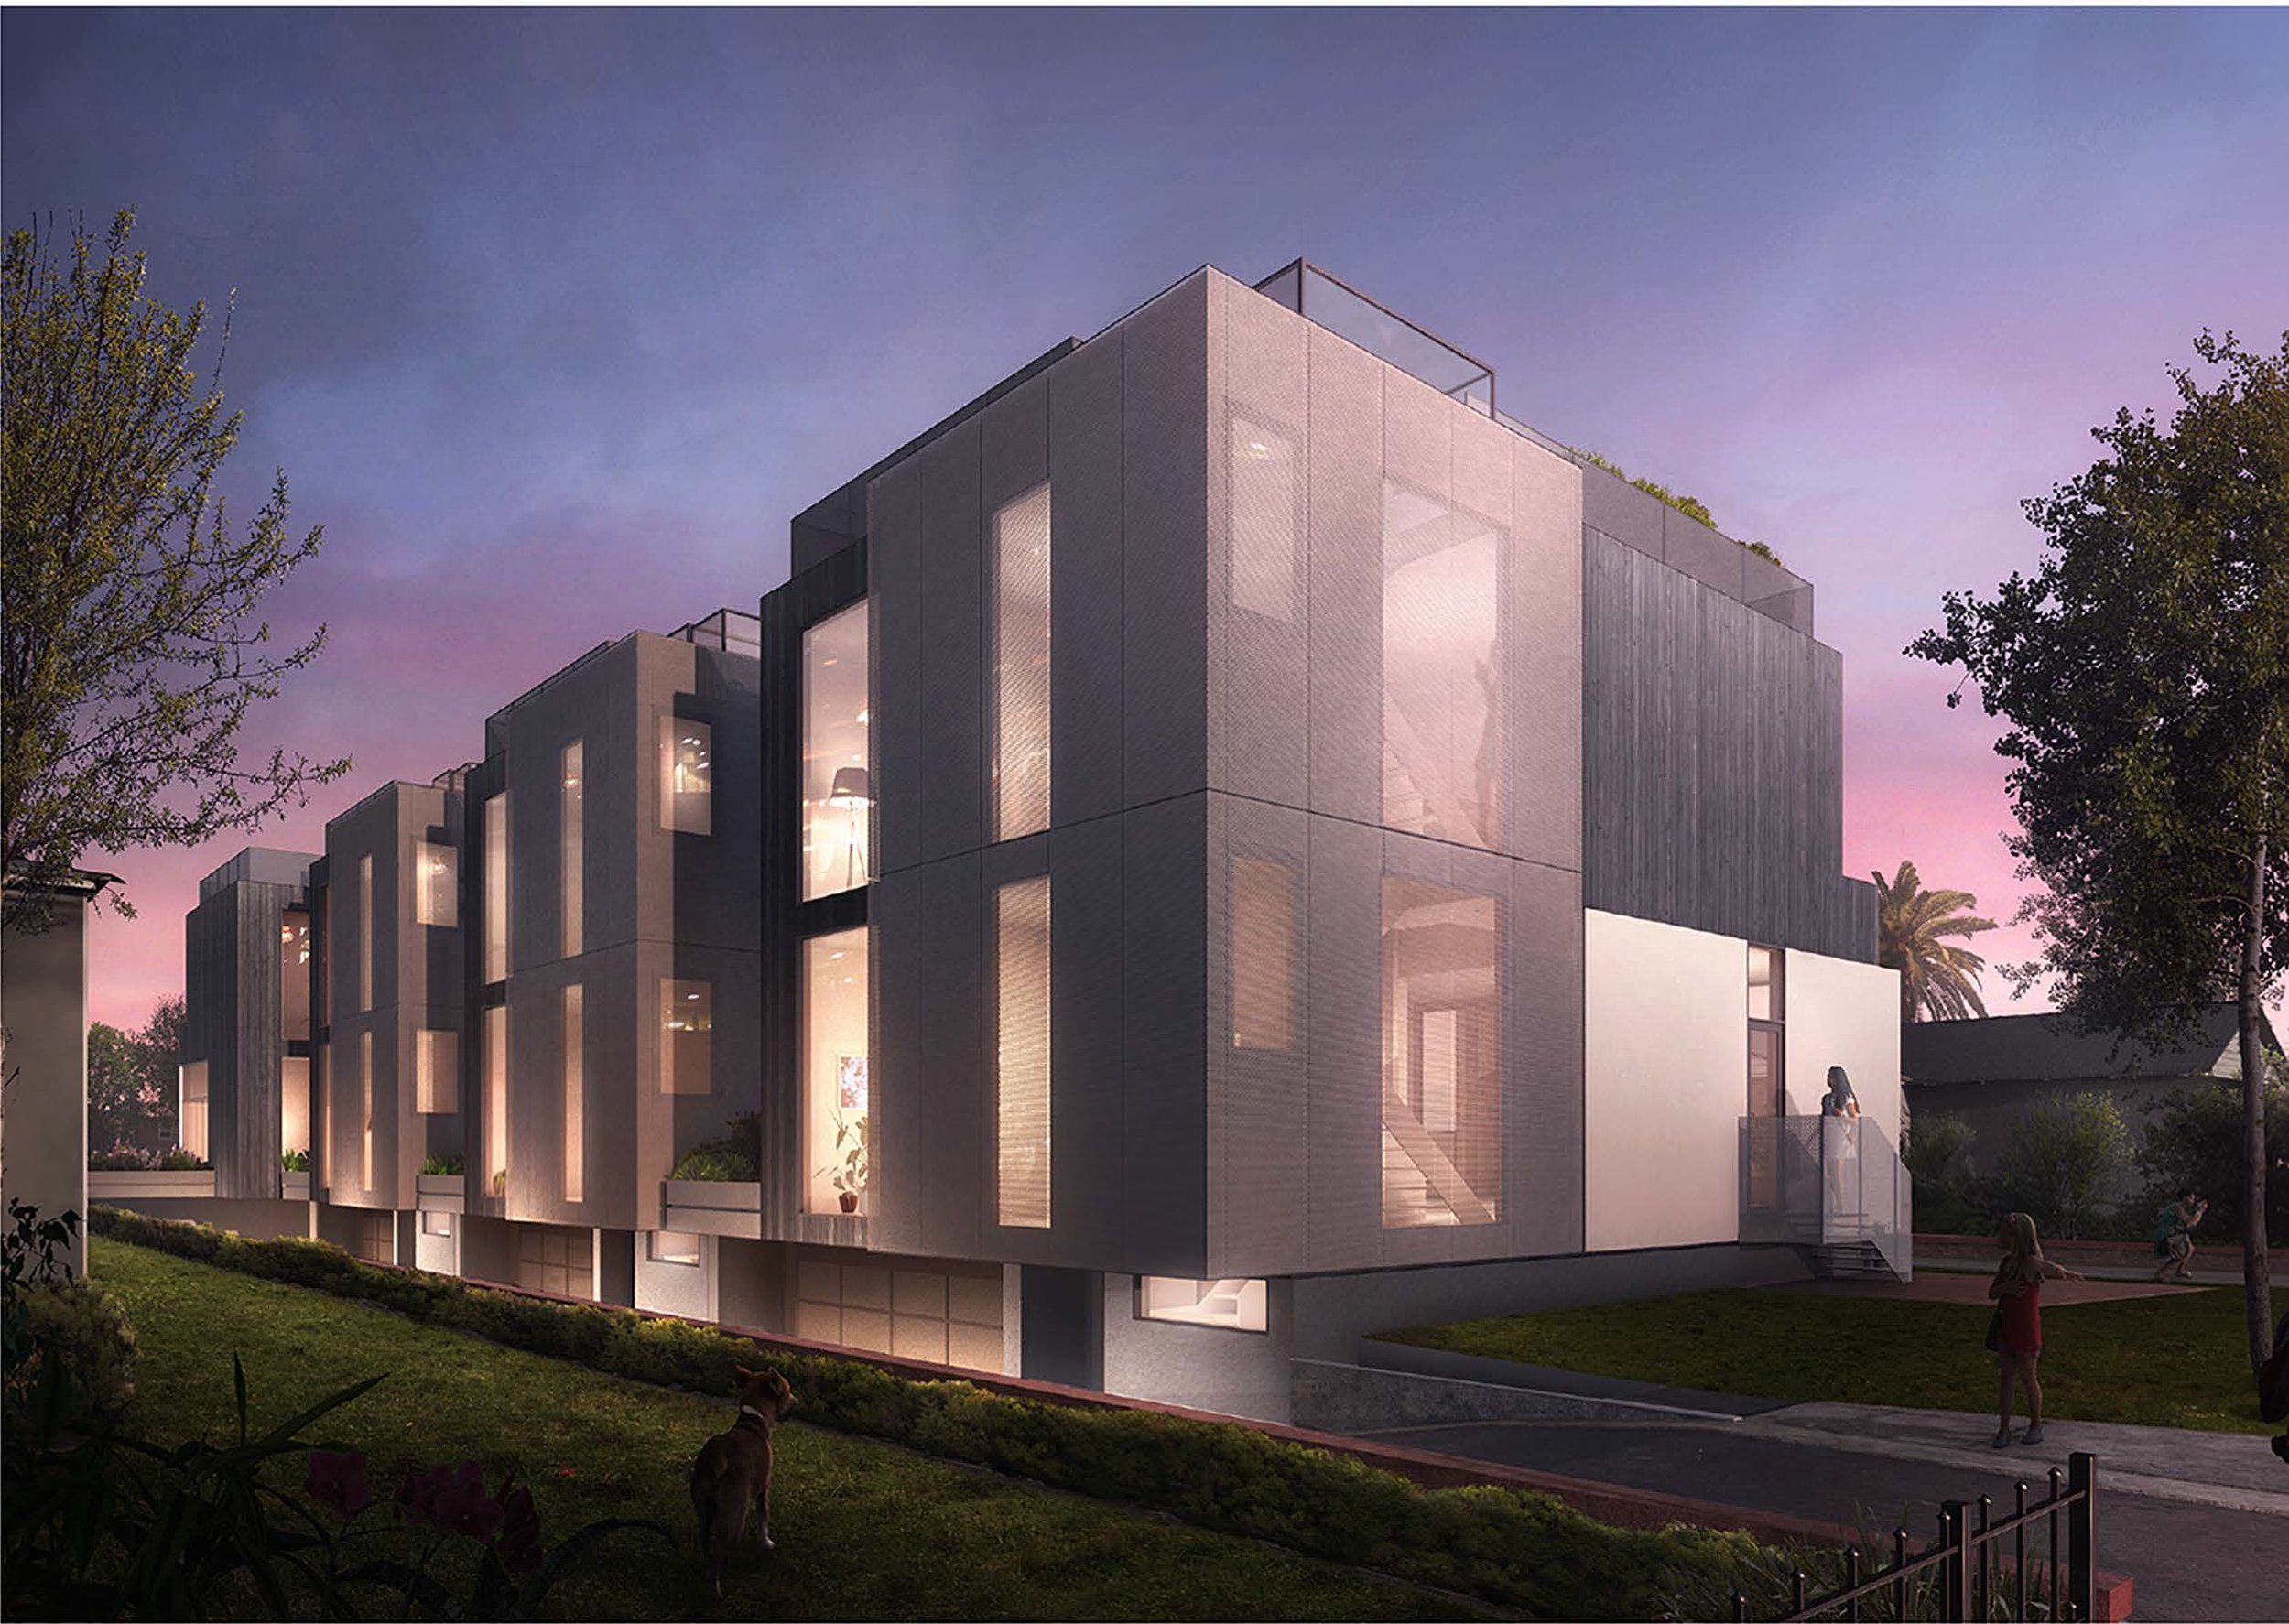 - WADE AVE | CULVER CITY | CALIFORNIA7000 SQ FT | 4 UNIT RESIDENCEVIEW MORE